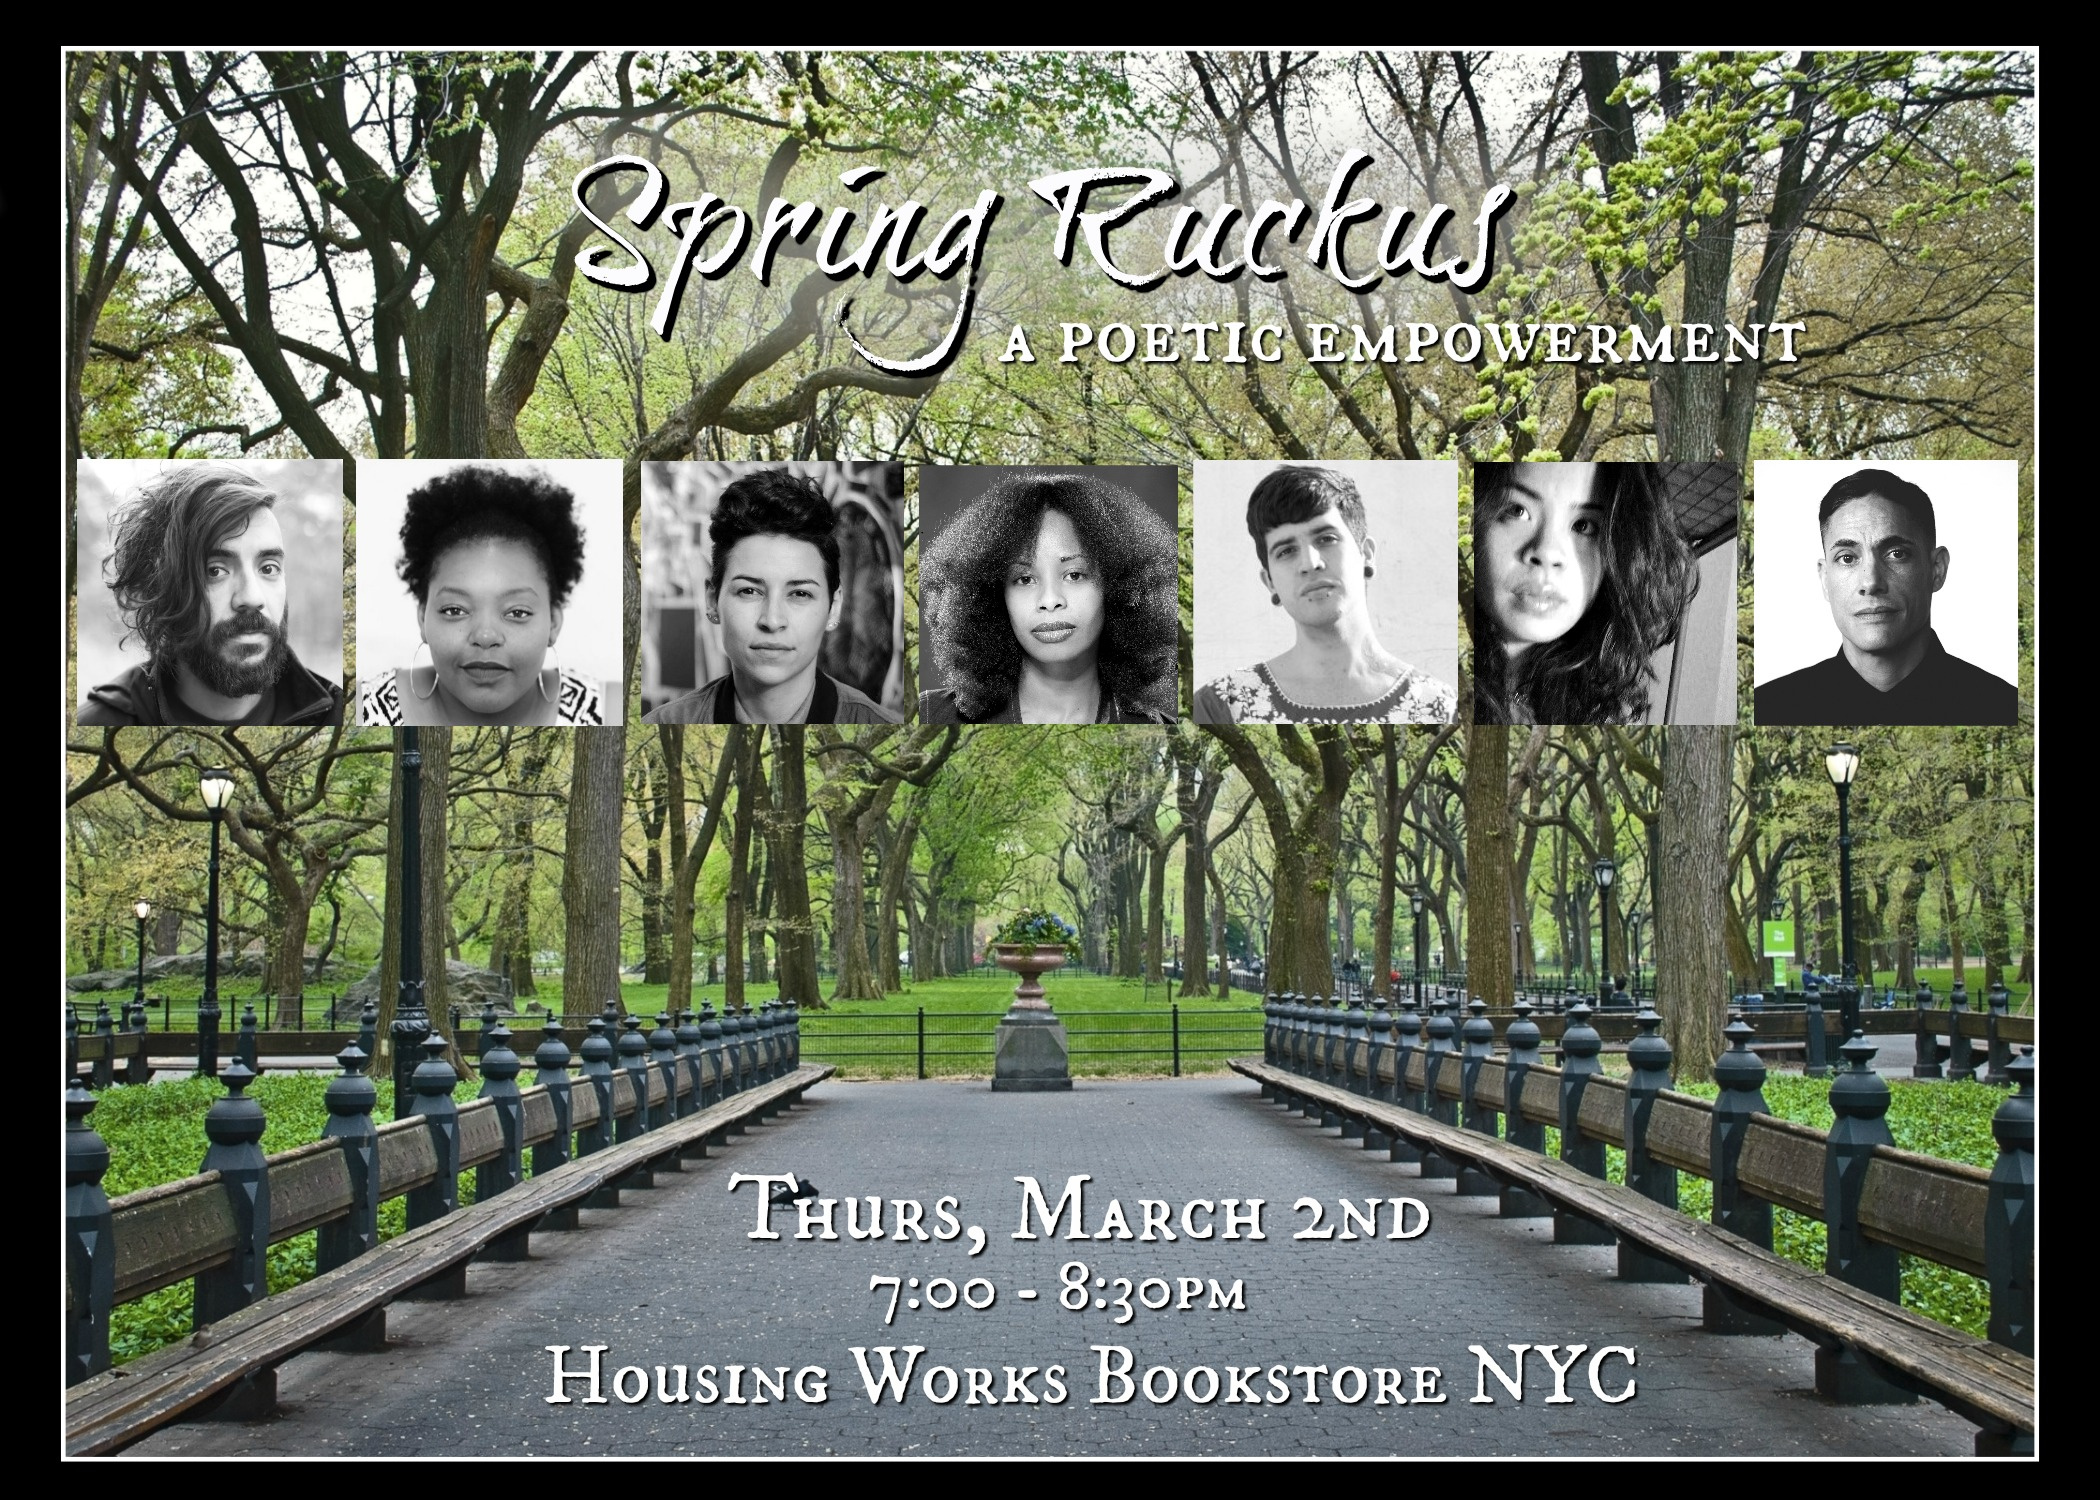 Spring Ruckus: A Poetic Empowerment